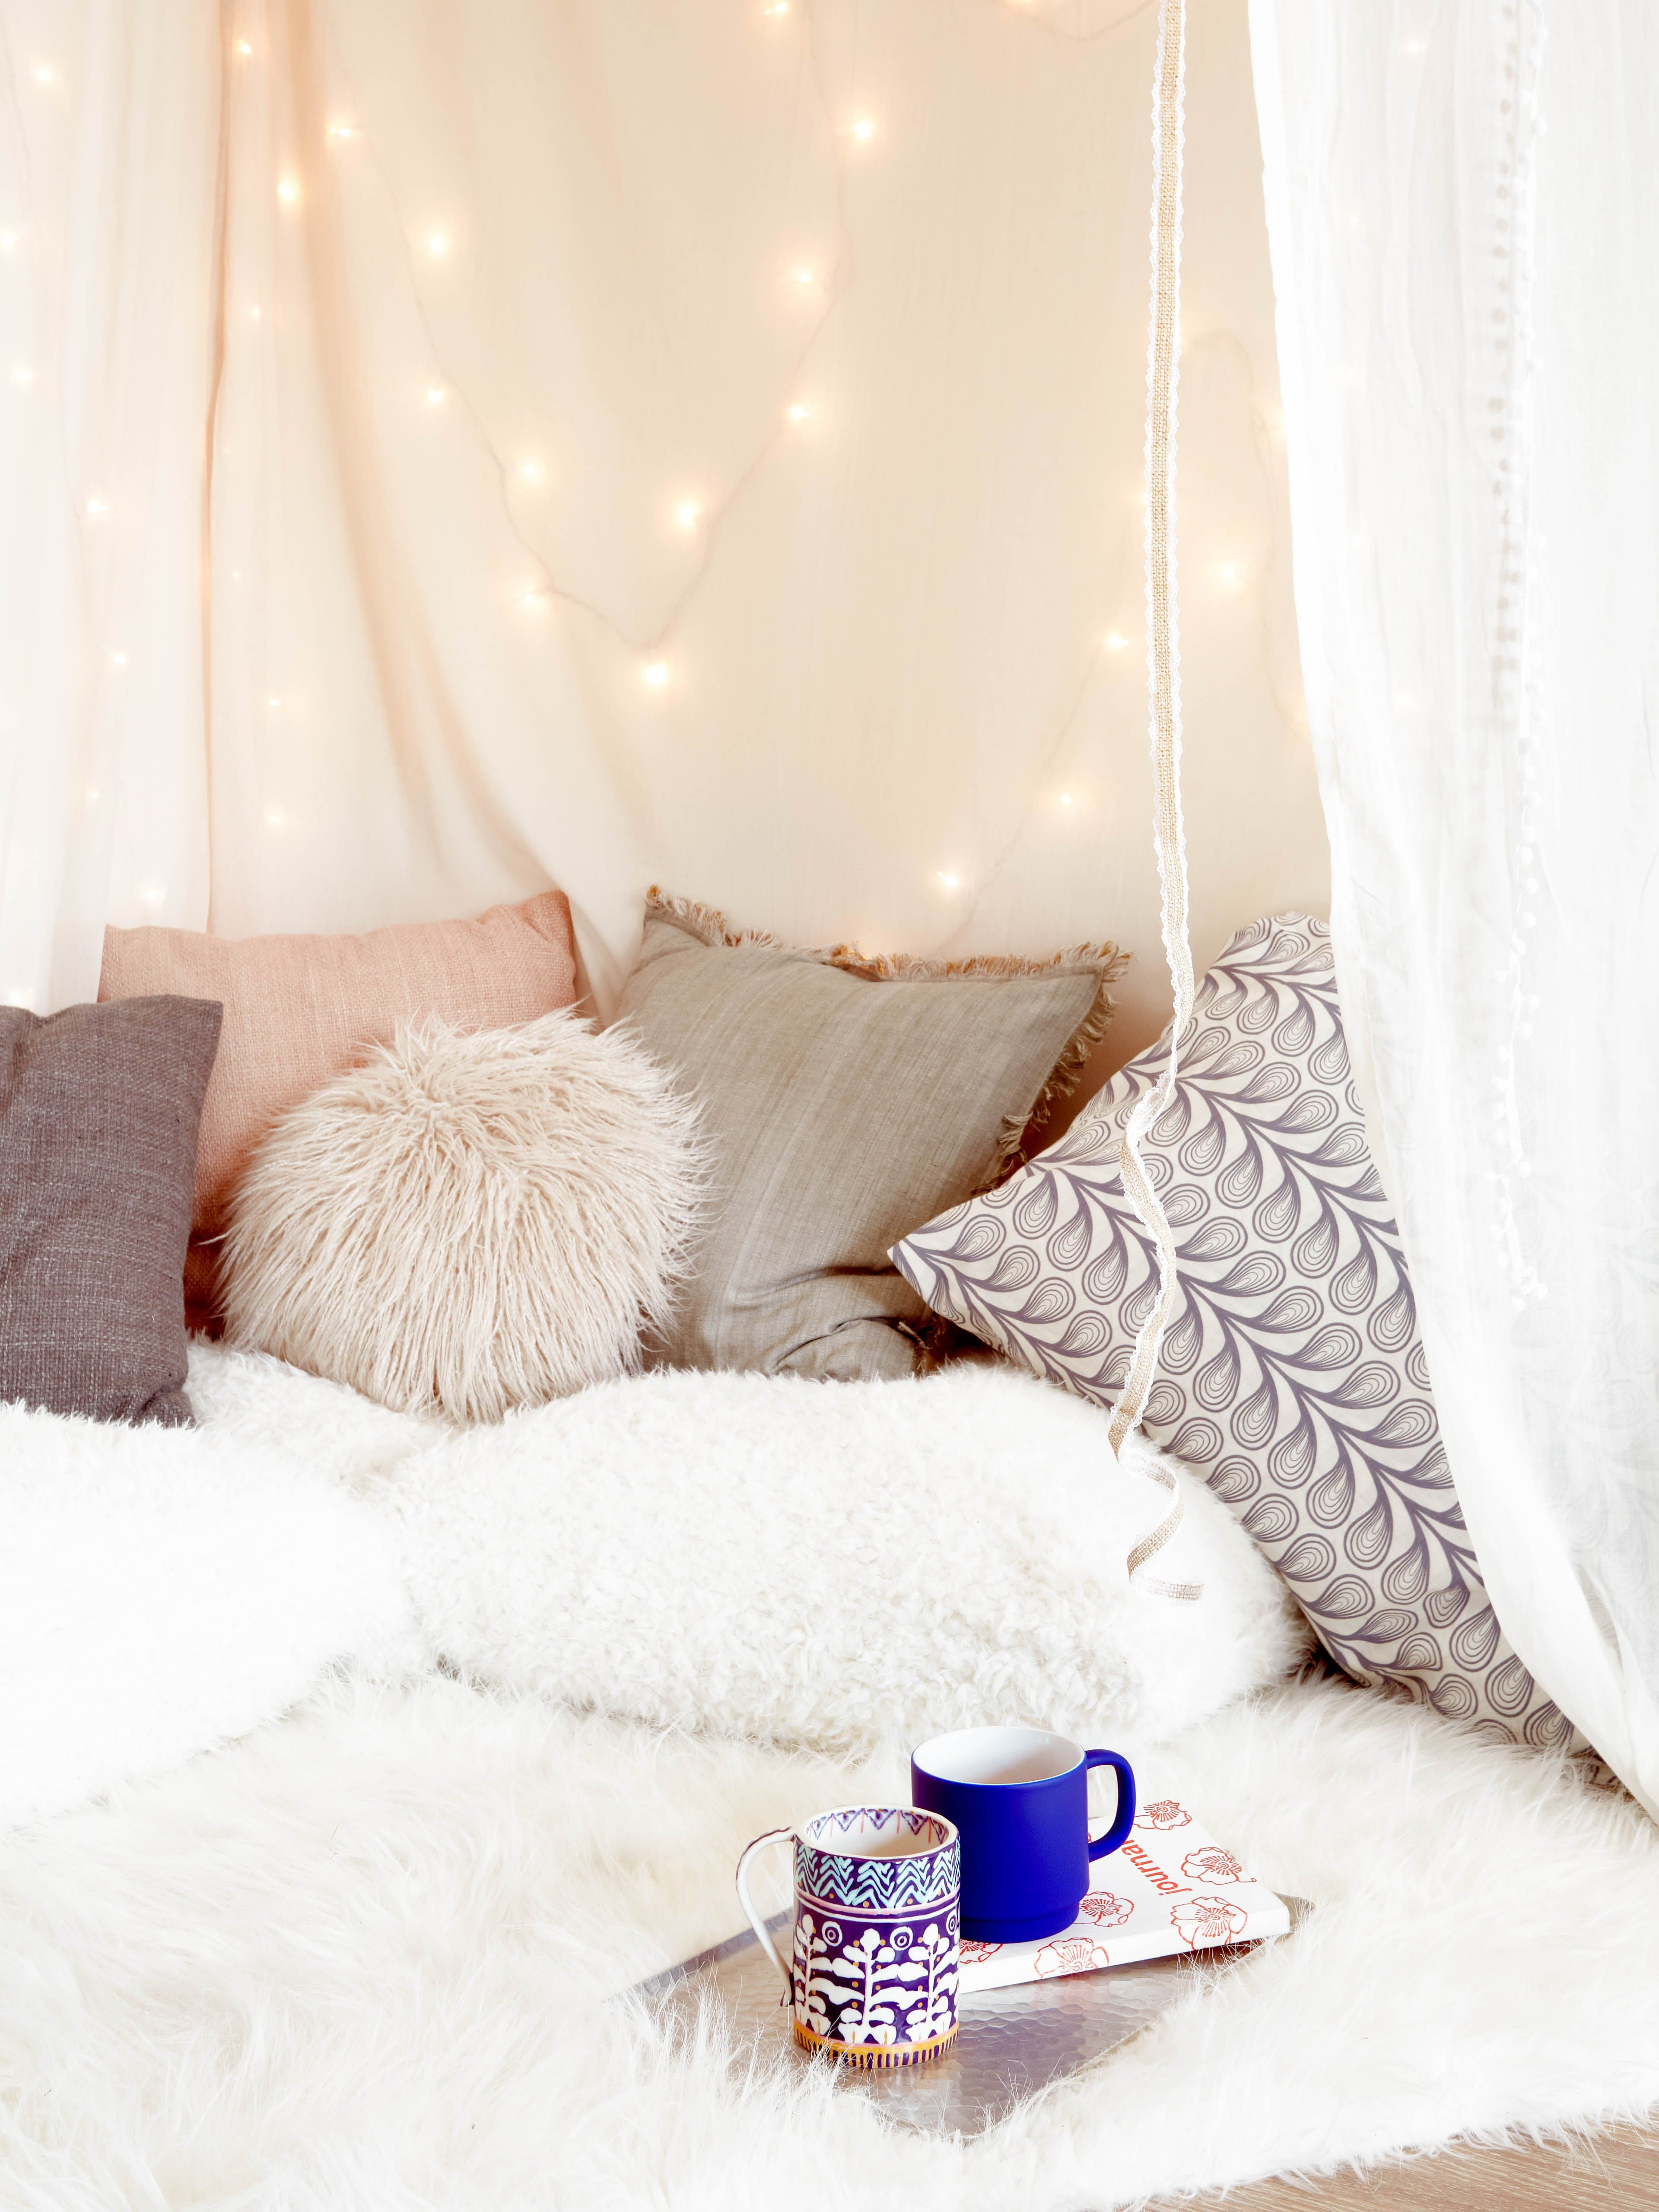 How to Make a Hygge Hideout at Home